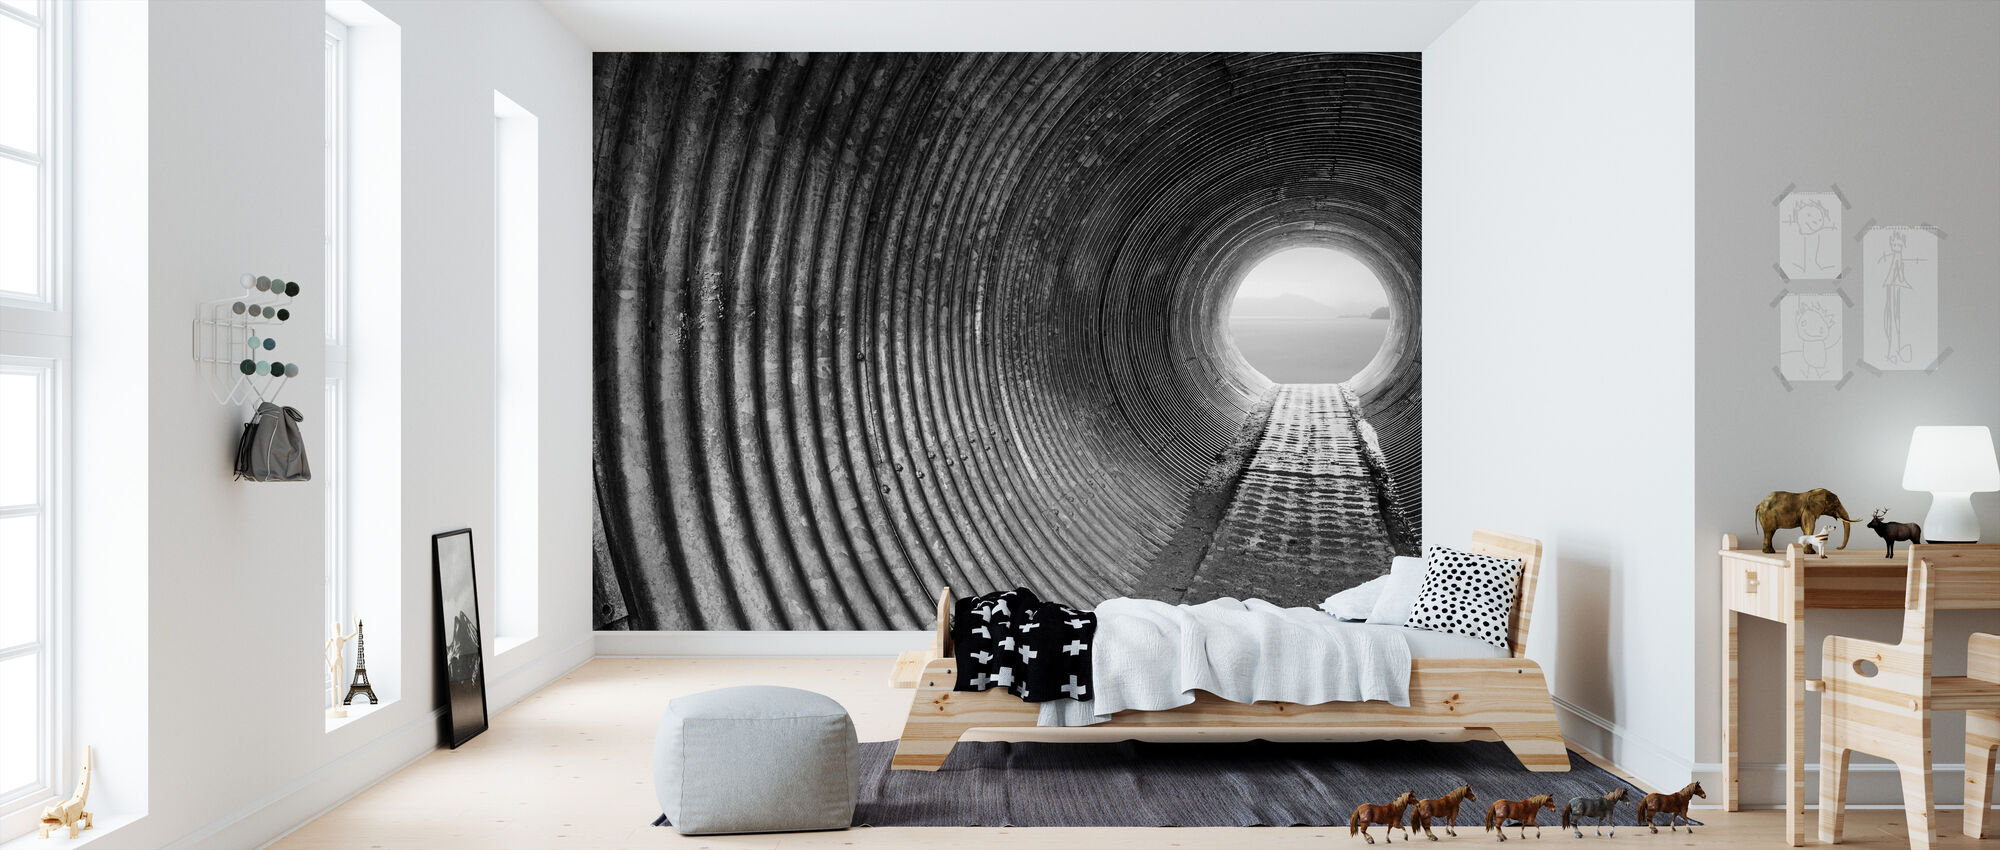 corrugated tunnel fototapete nach ma photowall. Black Bedroom Furniture Sets. Home Design Ideas